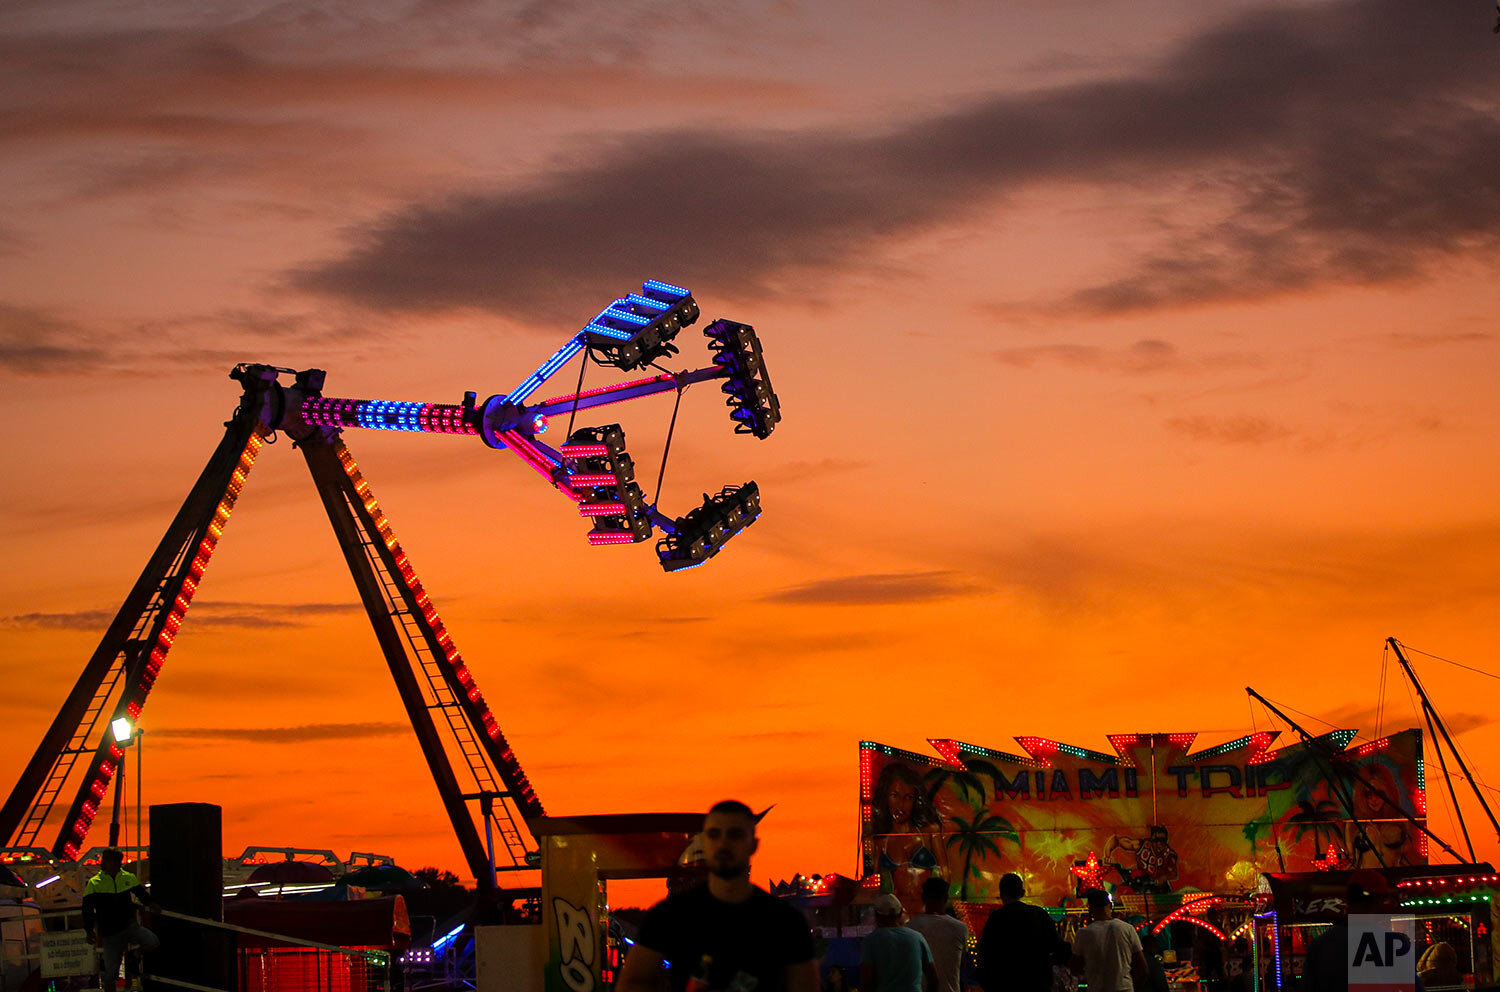 Rides are backdropped by the sunset sky at an autumn fair in Titu, southern Romania, Sept. 12, 2019. (AP Photo/Vadim Ghirda)